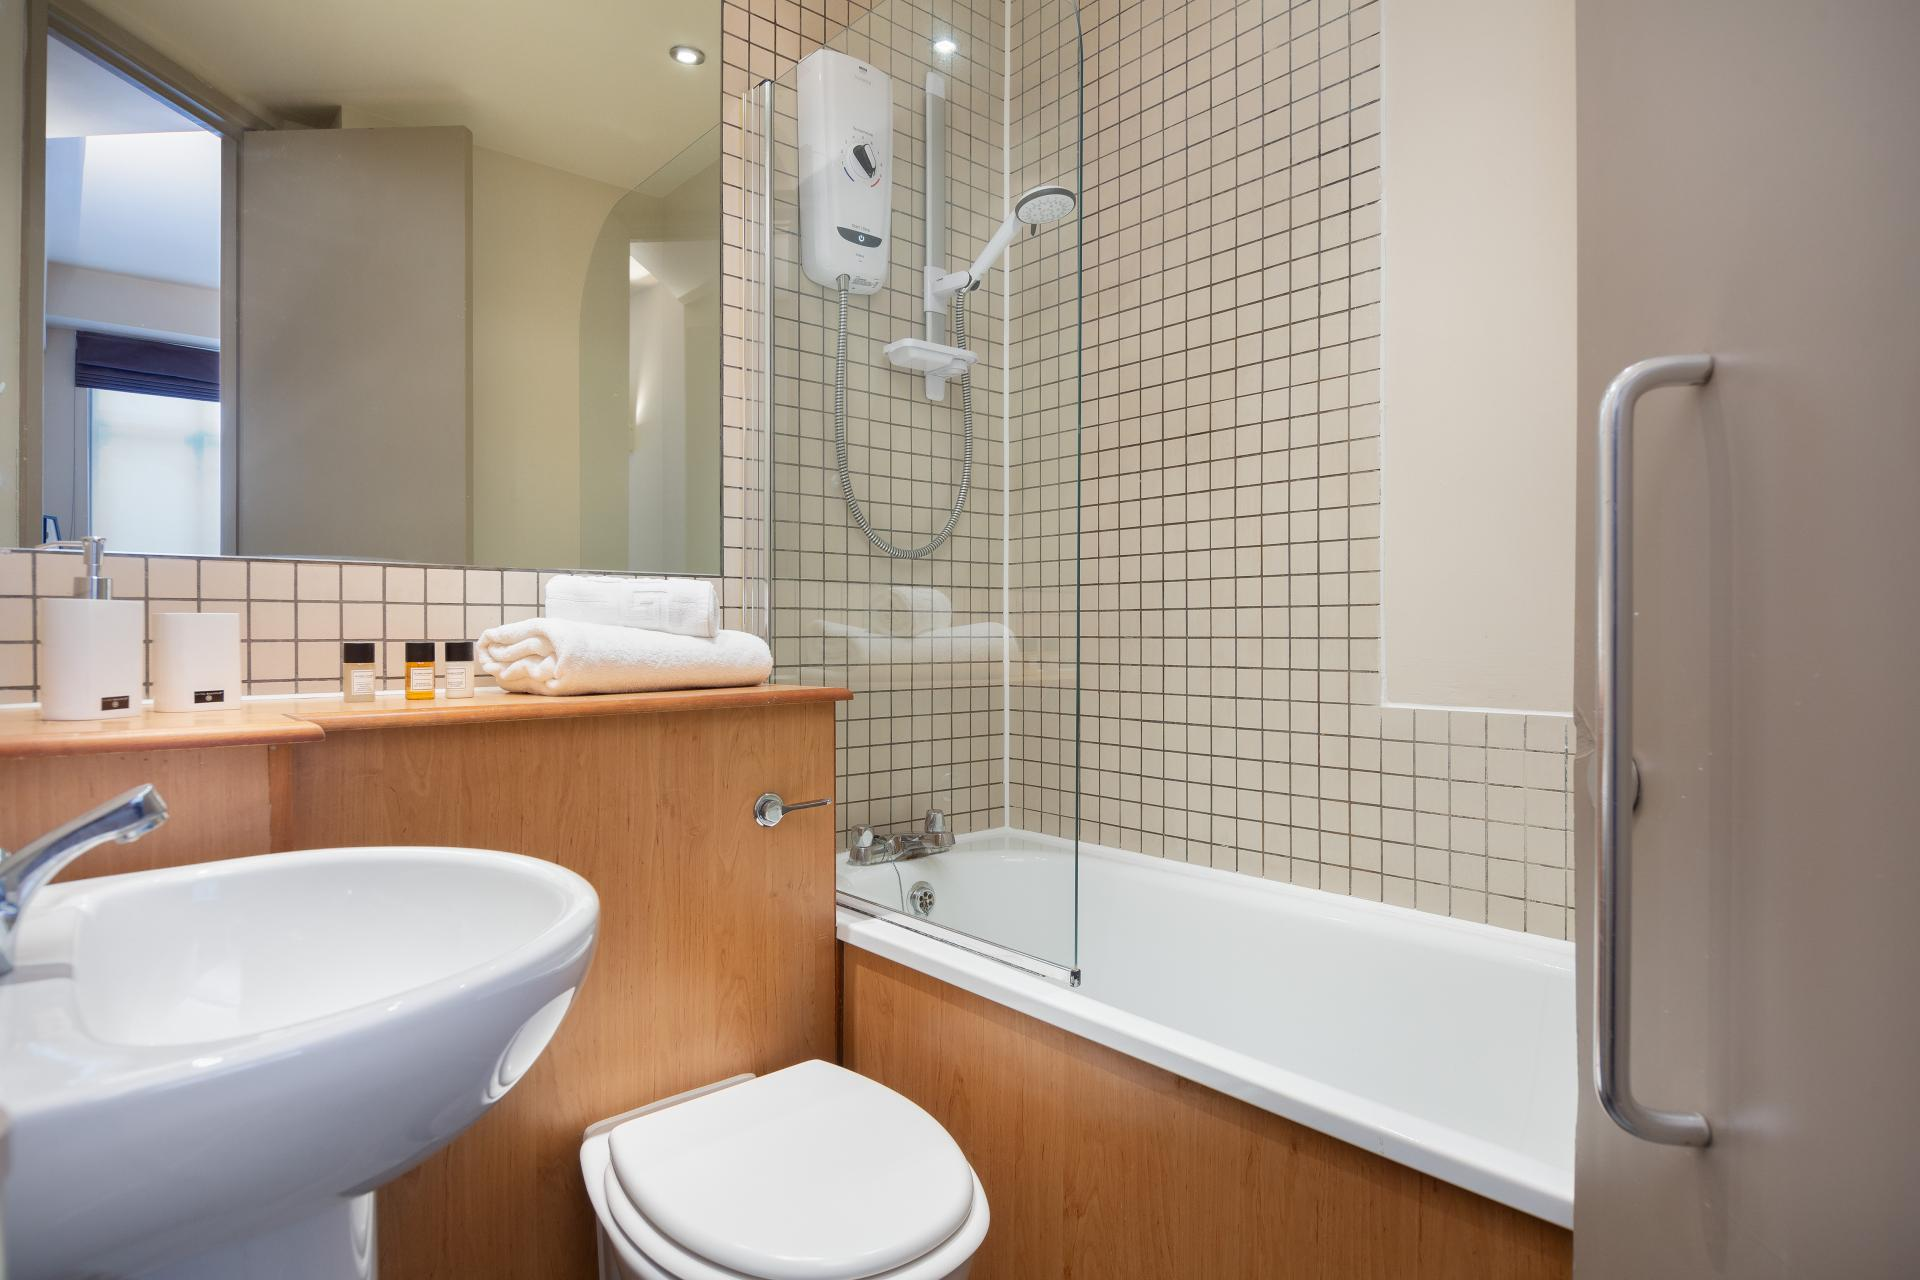 Bath at Lawrence House Serviced Apartments, Old Street, London - Citybase Apartments